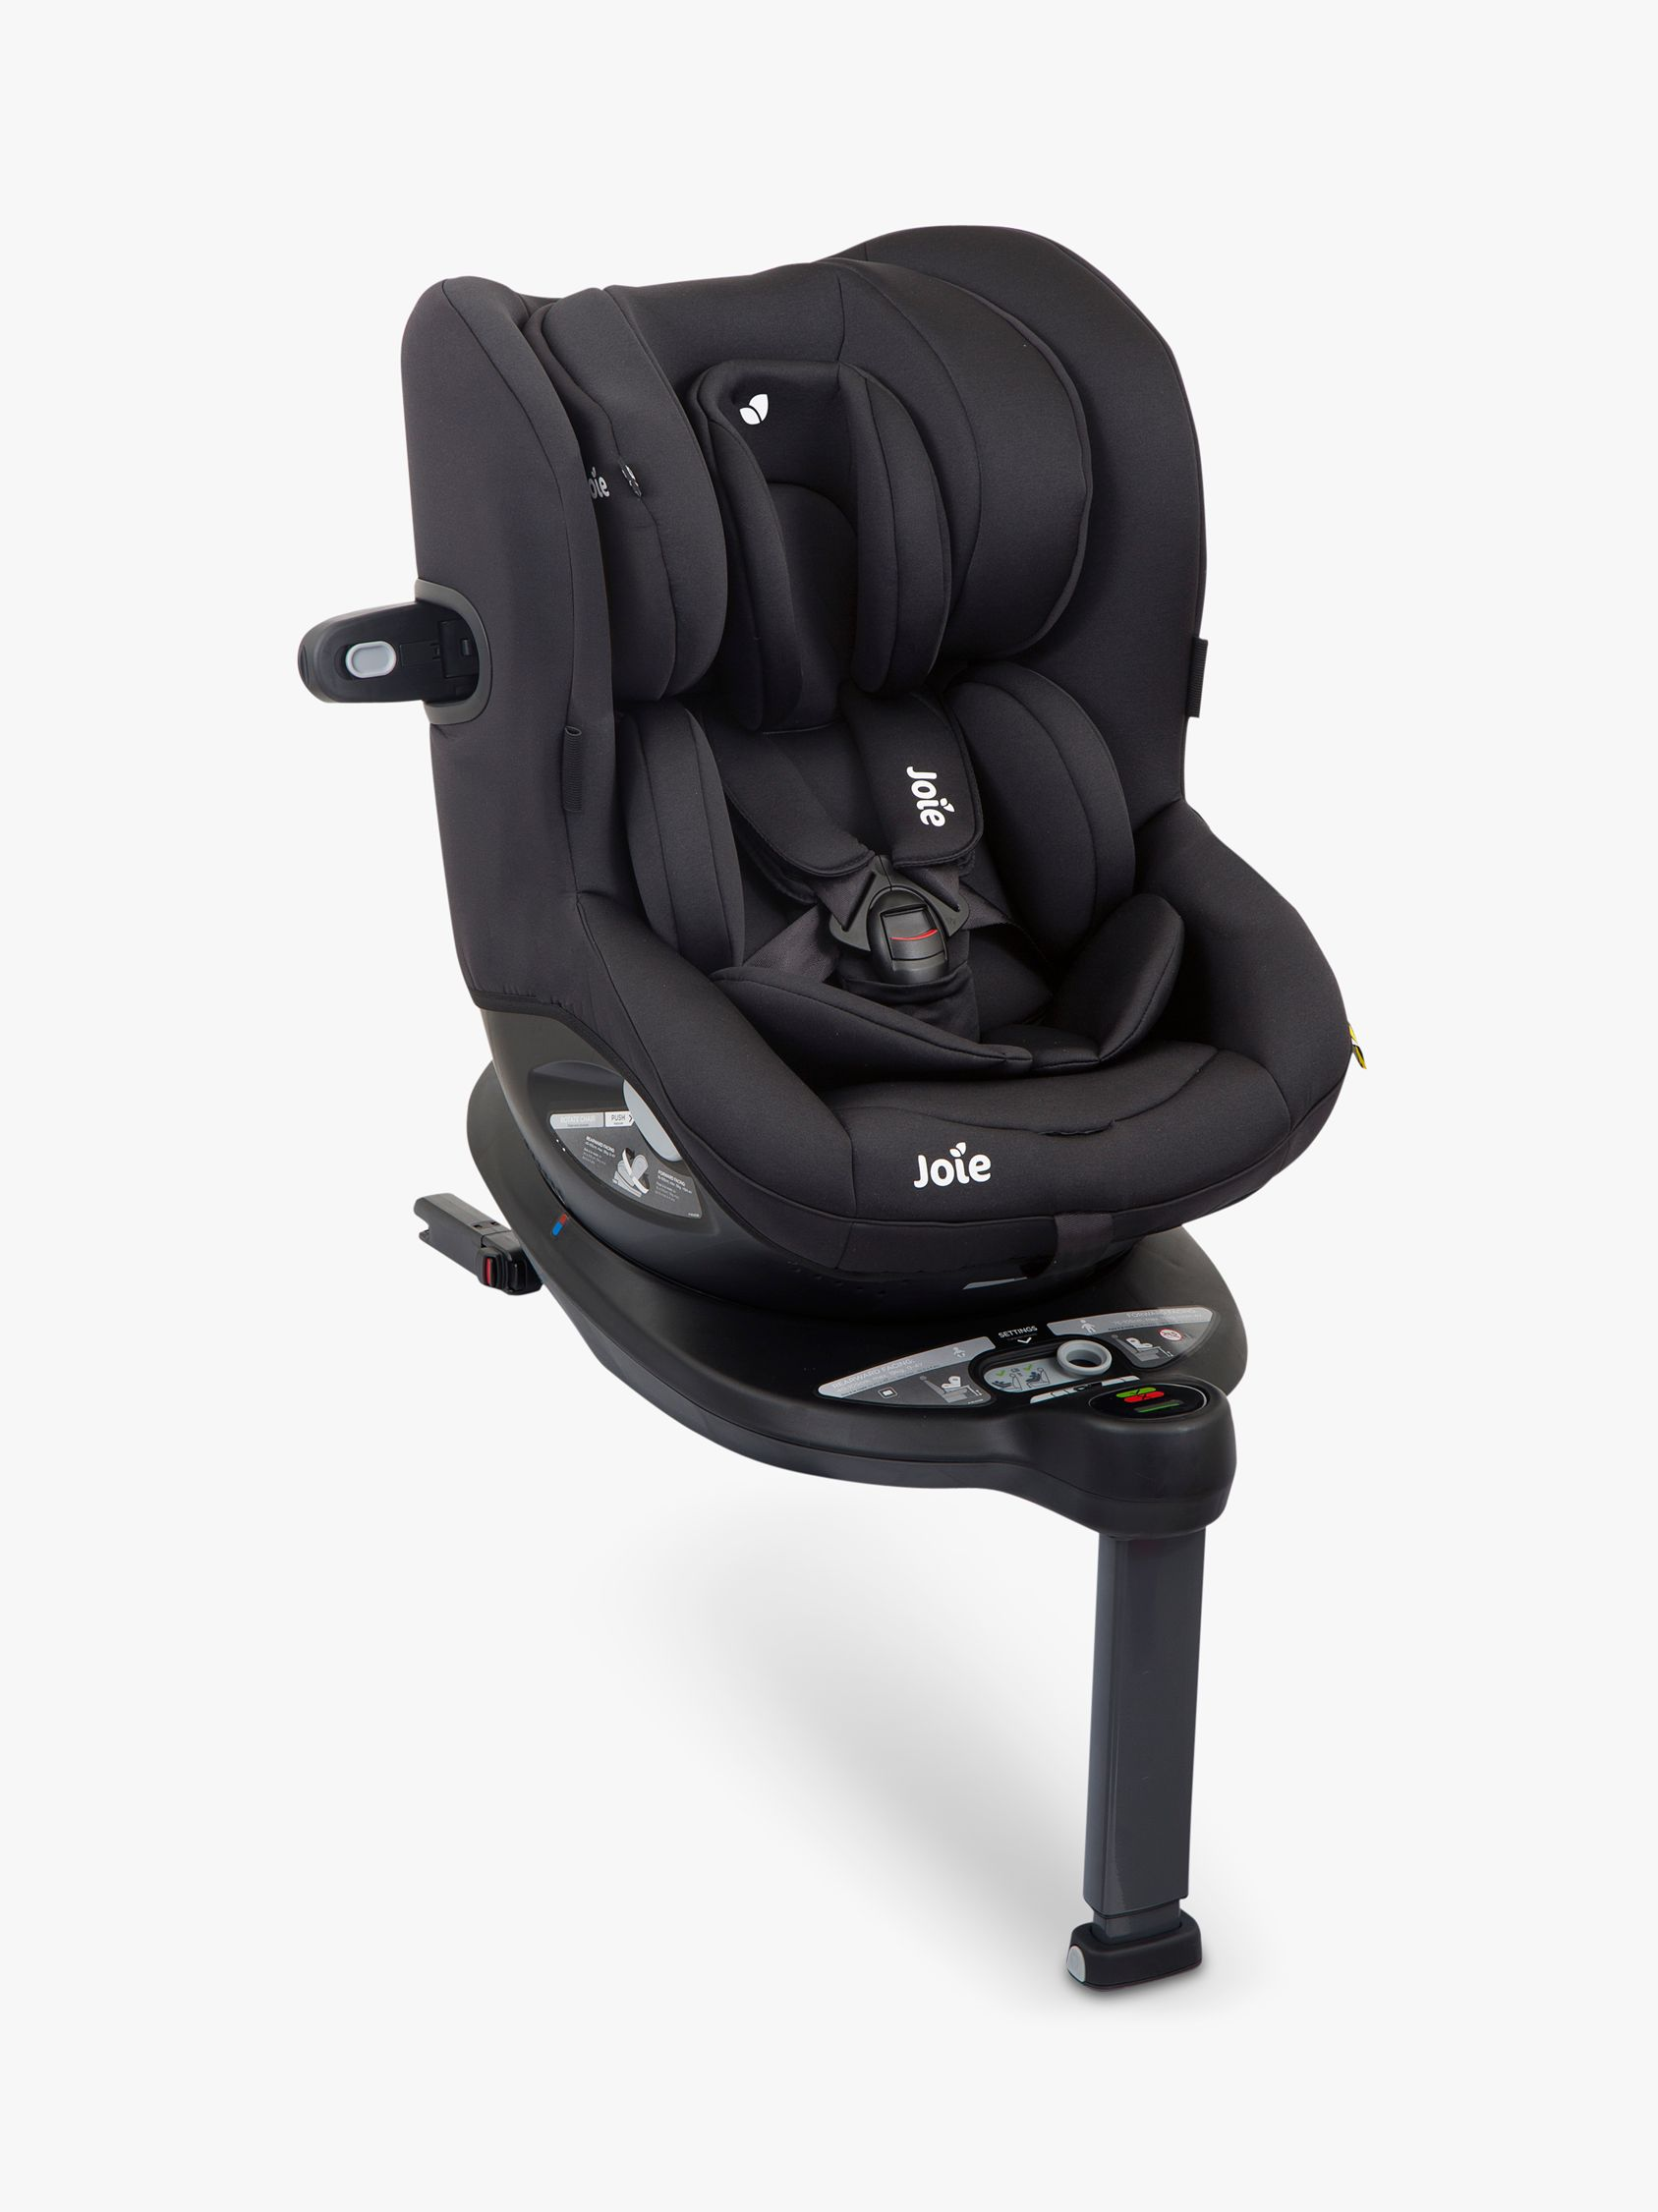 Joie Baby Joie Baby i-Spin 360 Group 0+/1 i-Size Car Seat, Coal